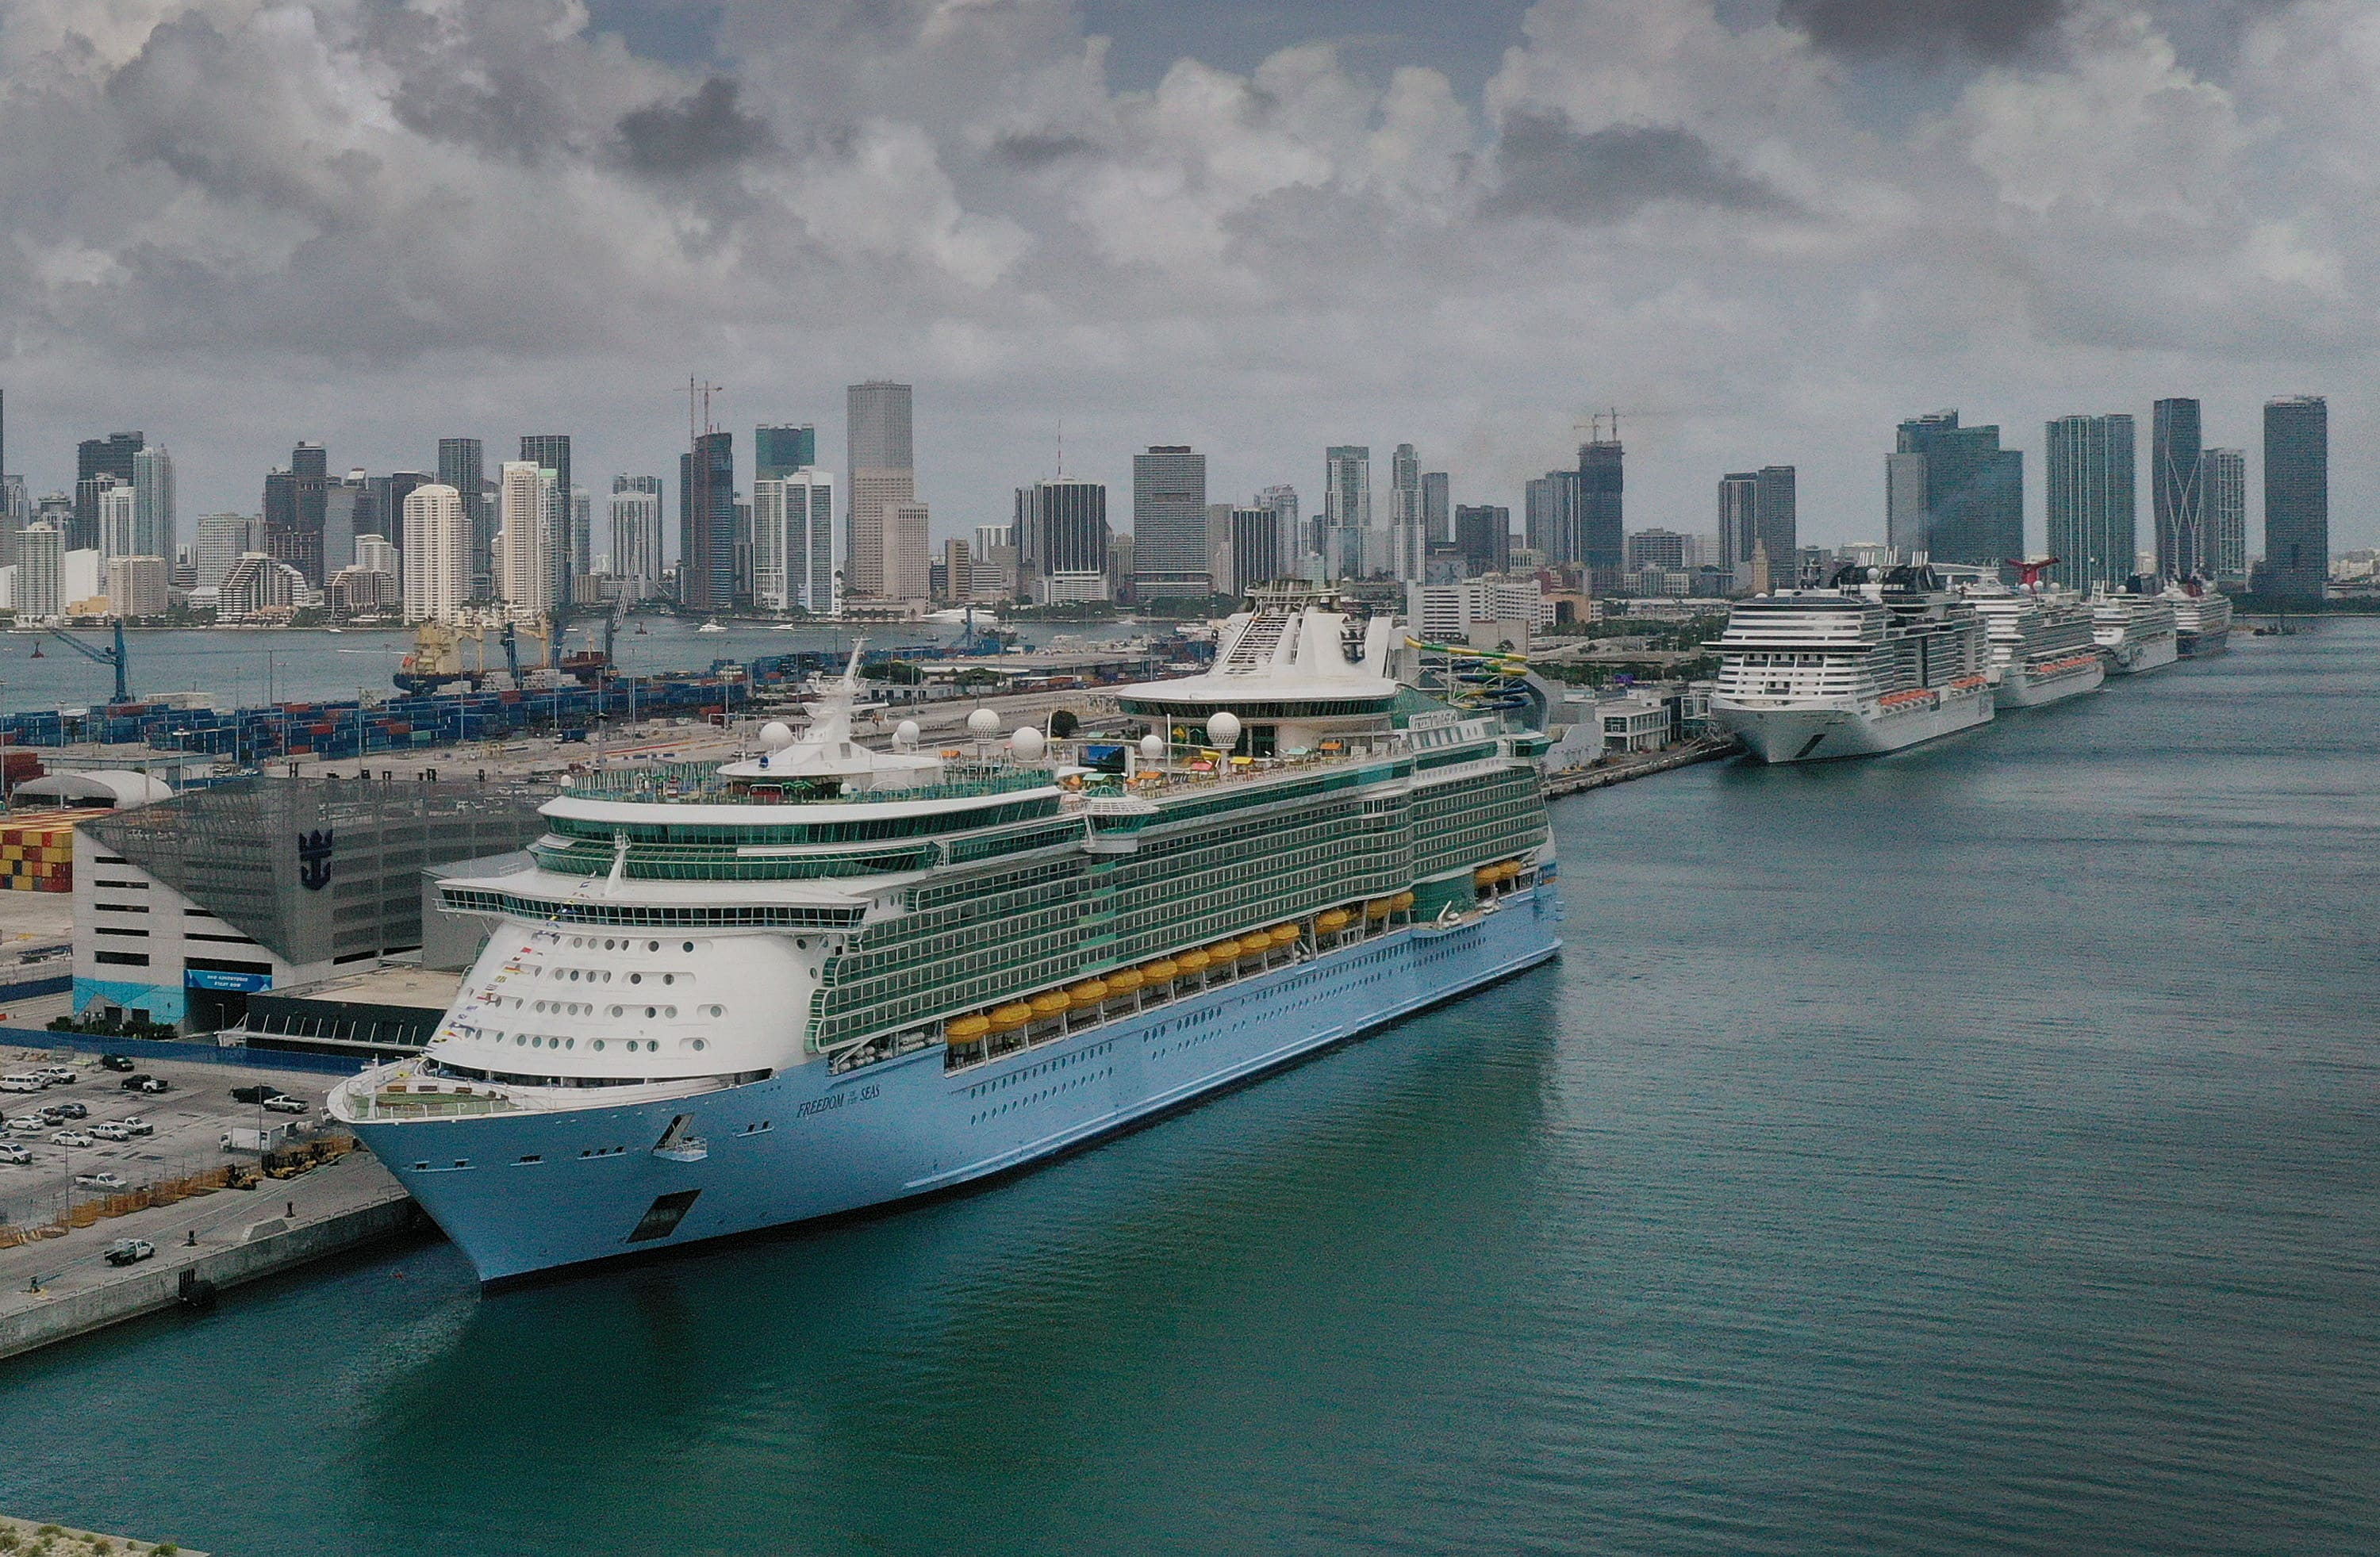 Royal Caribbean Shares Tumble as 6 Covid Cases Discovered on Board a Ship, Cruise Line Expands U.S. Testing Policy – NBC4 Washington